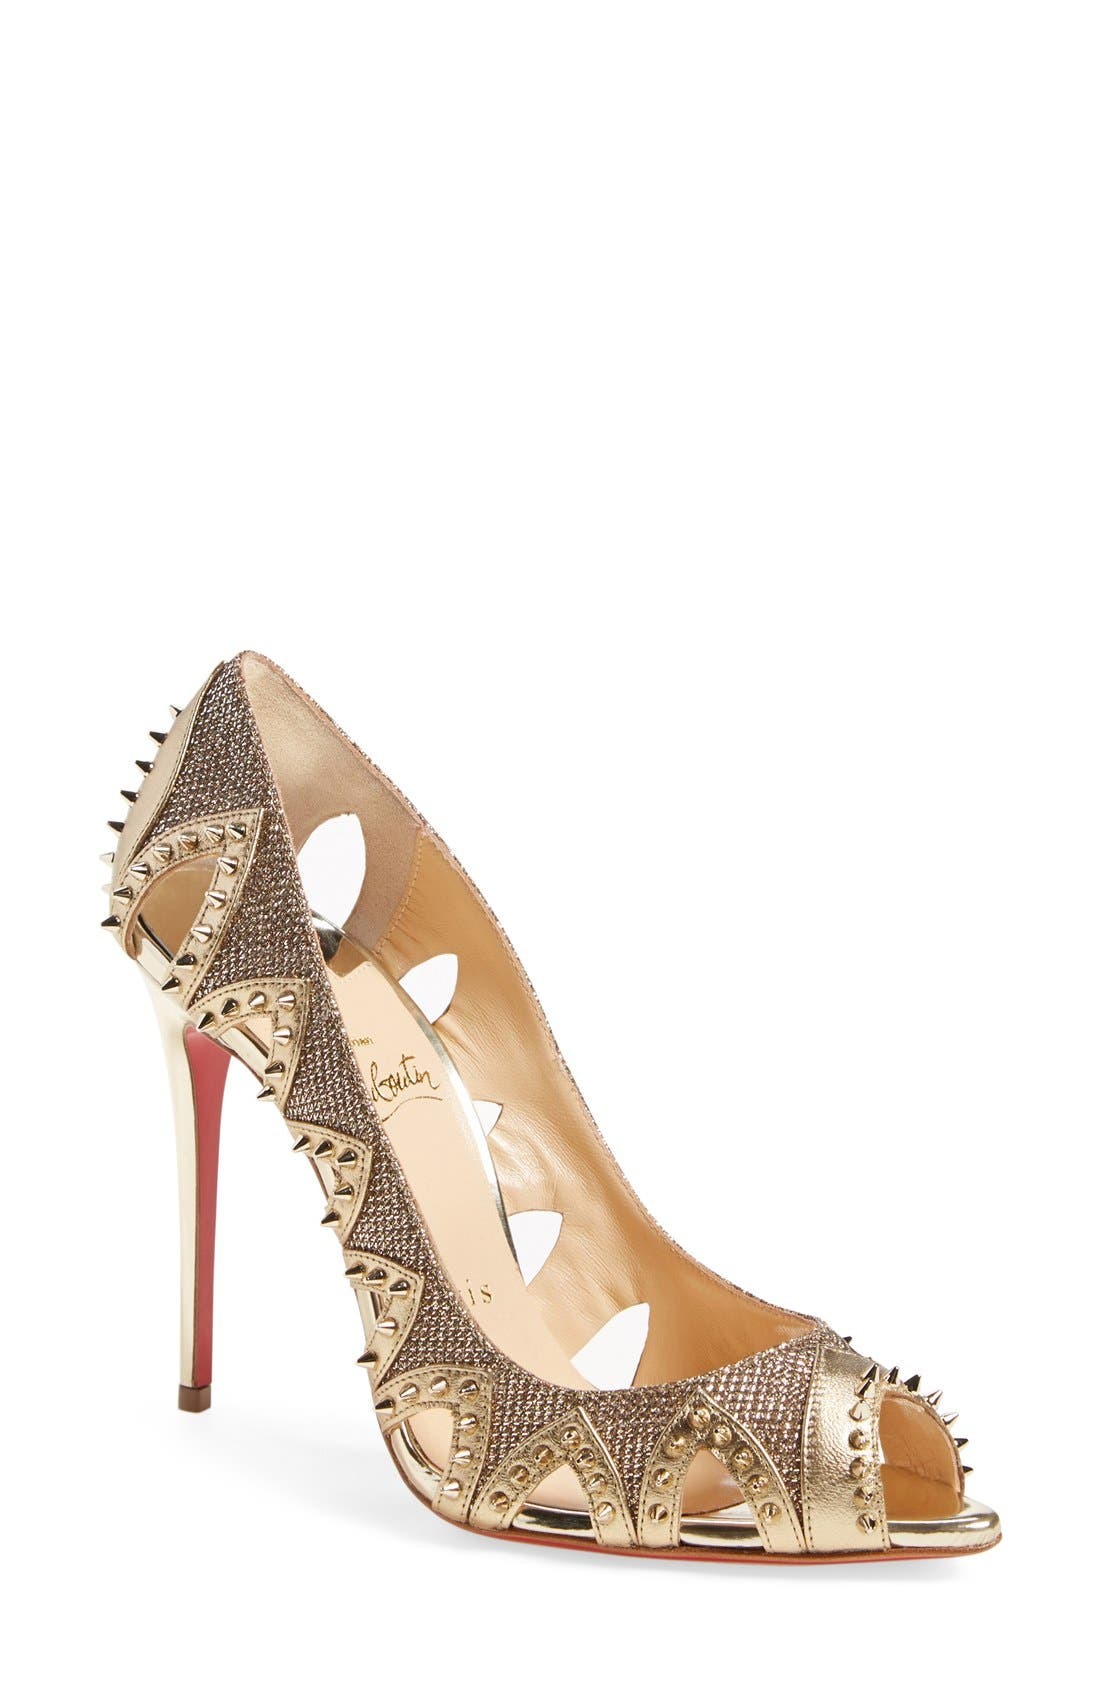 Main Image - Christian Louboutin 'Pinder City' Peep Toe Pump